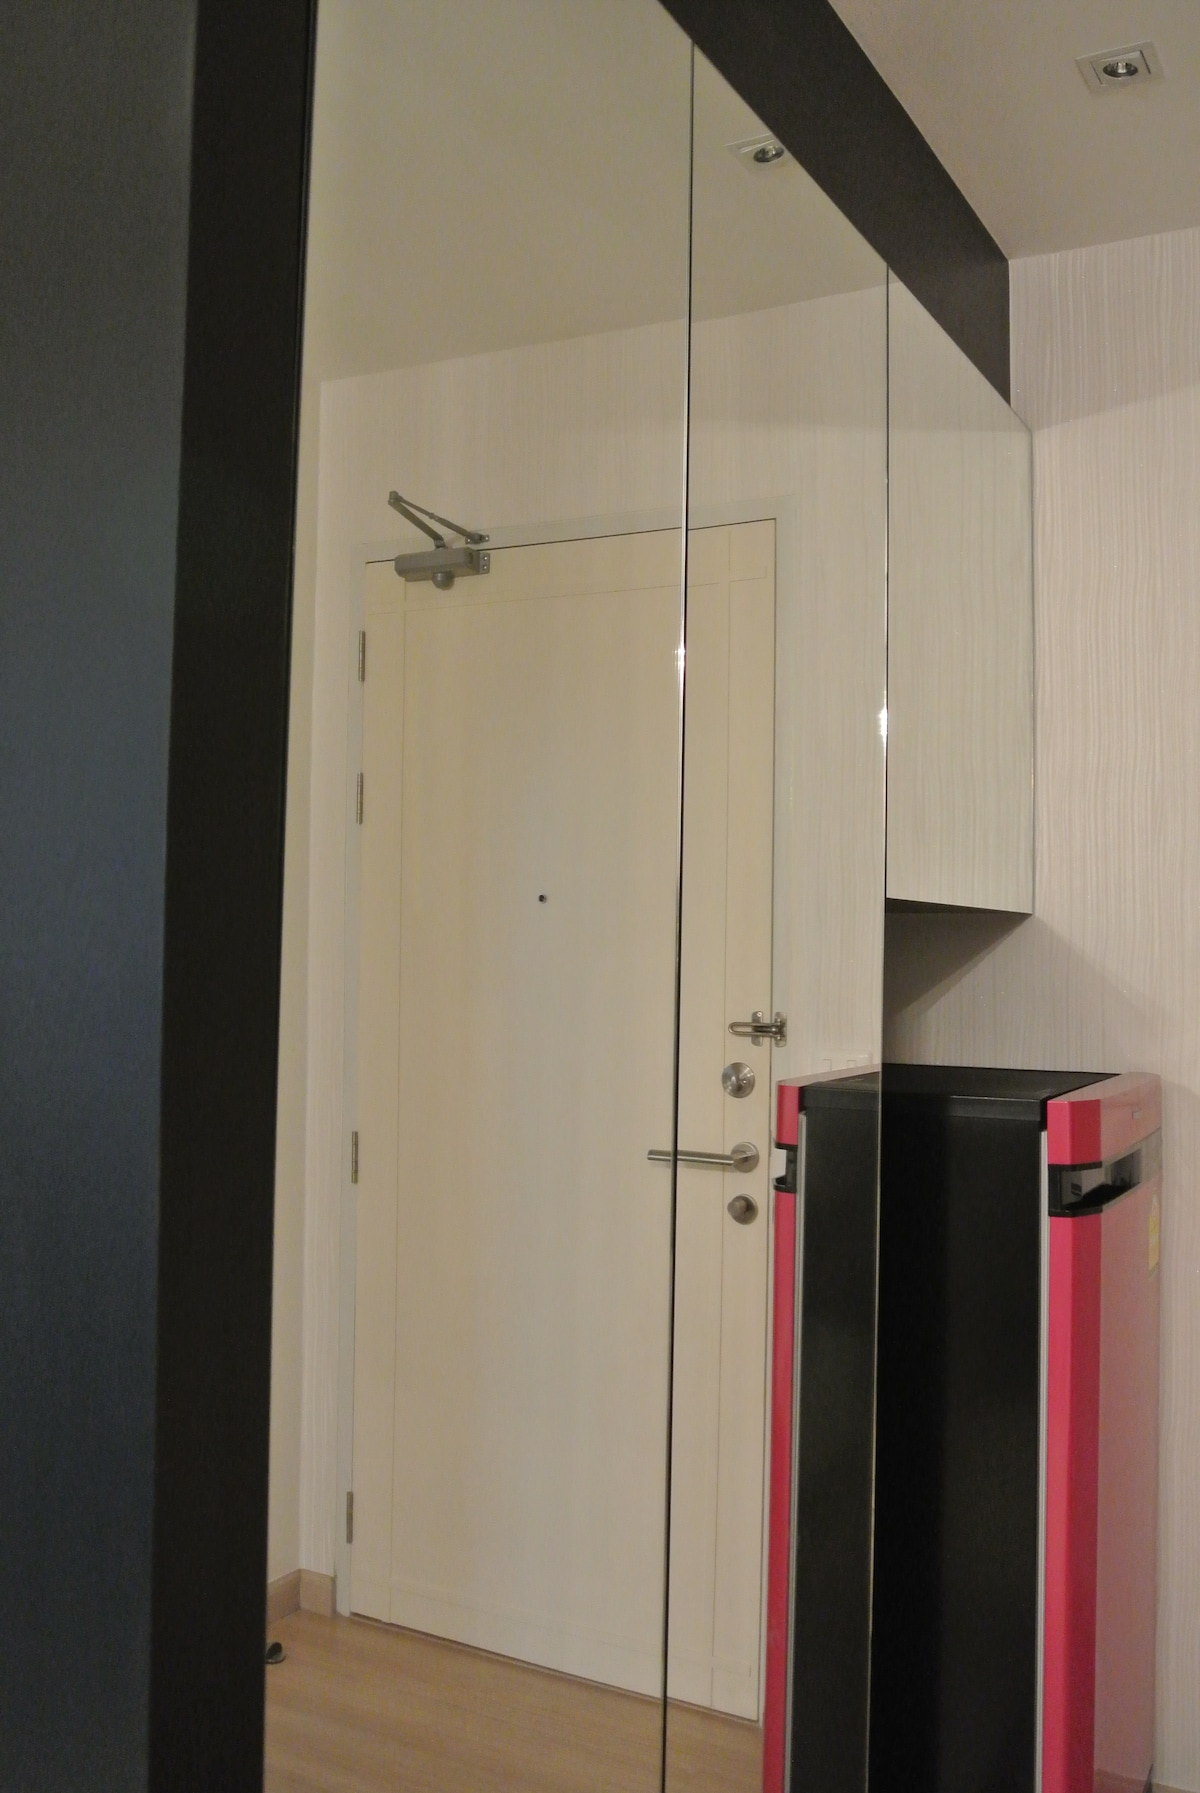 Fridge and built-in cupboard.